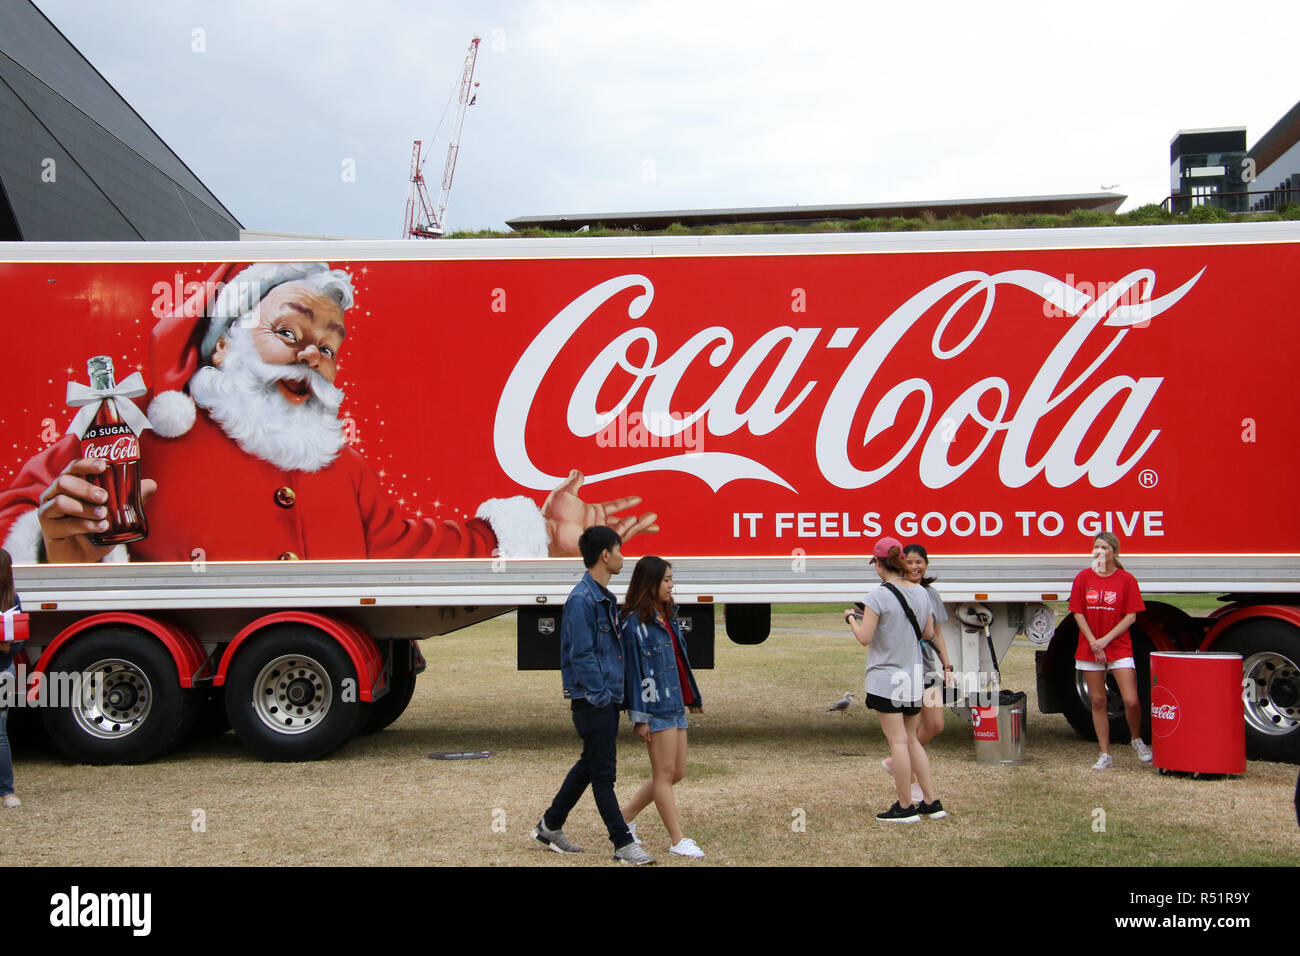 Coca Cola and Salvation Army truck at Tumbalong Park, Darling Harbour for the Coca Cola Christmas Tour launch. - Stock Image